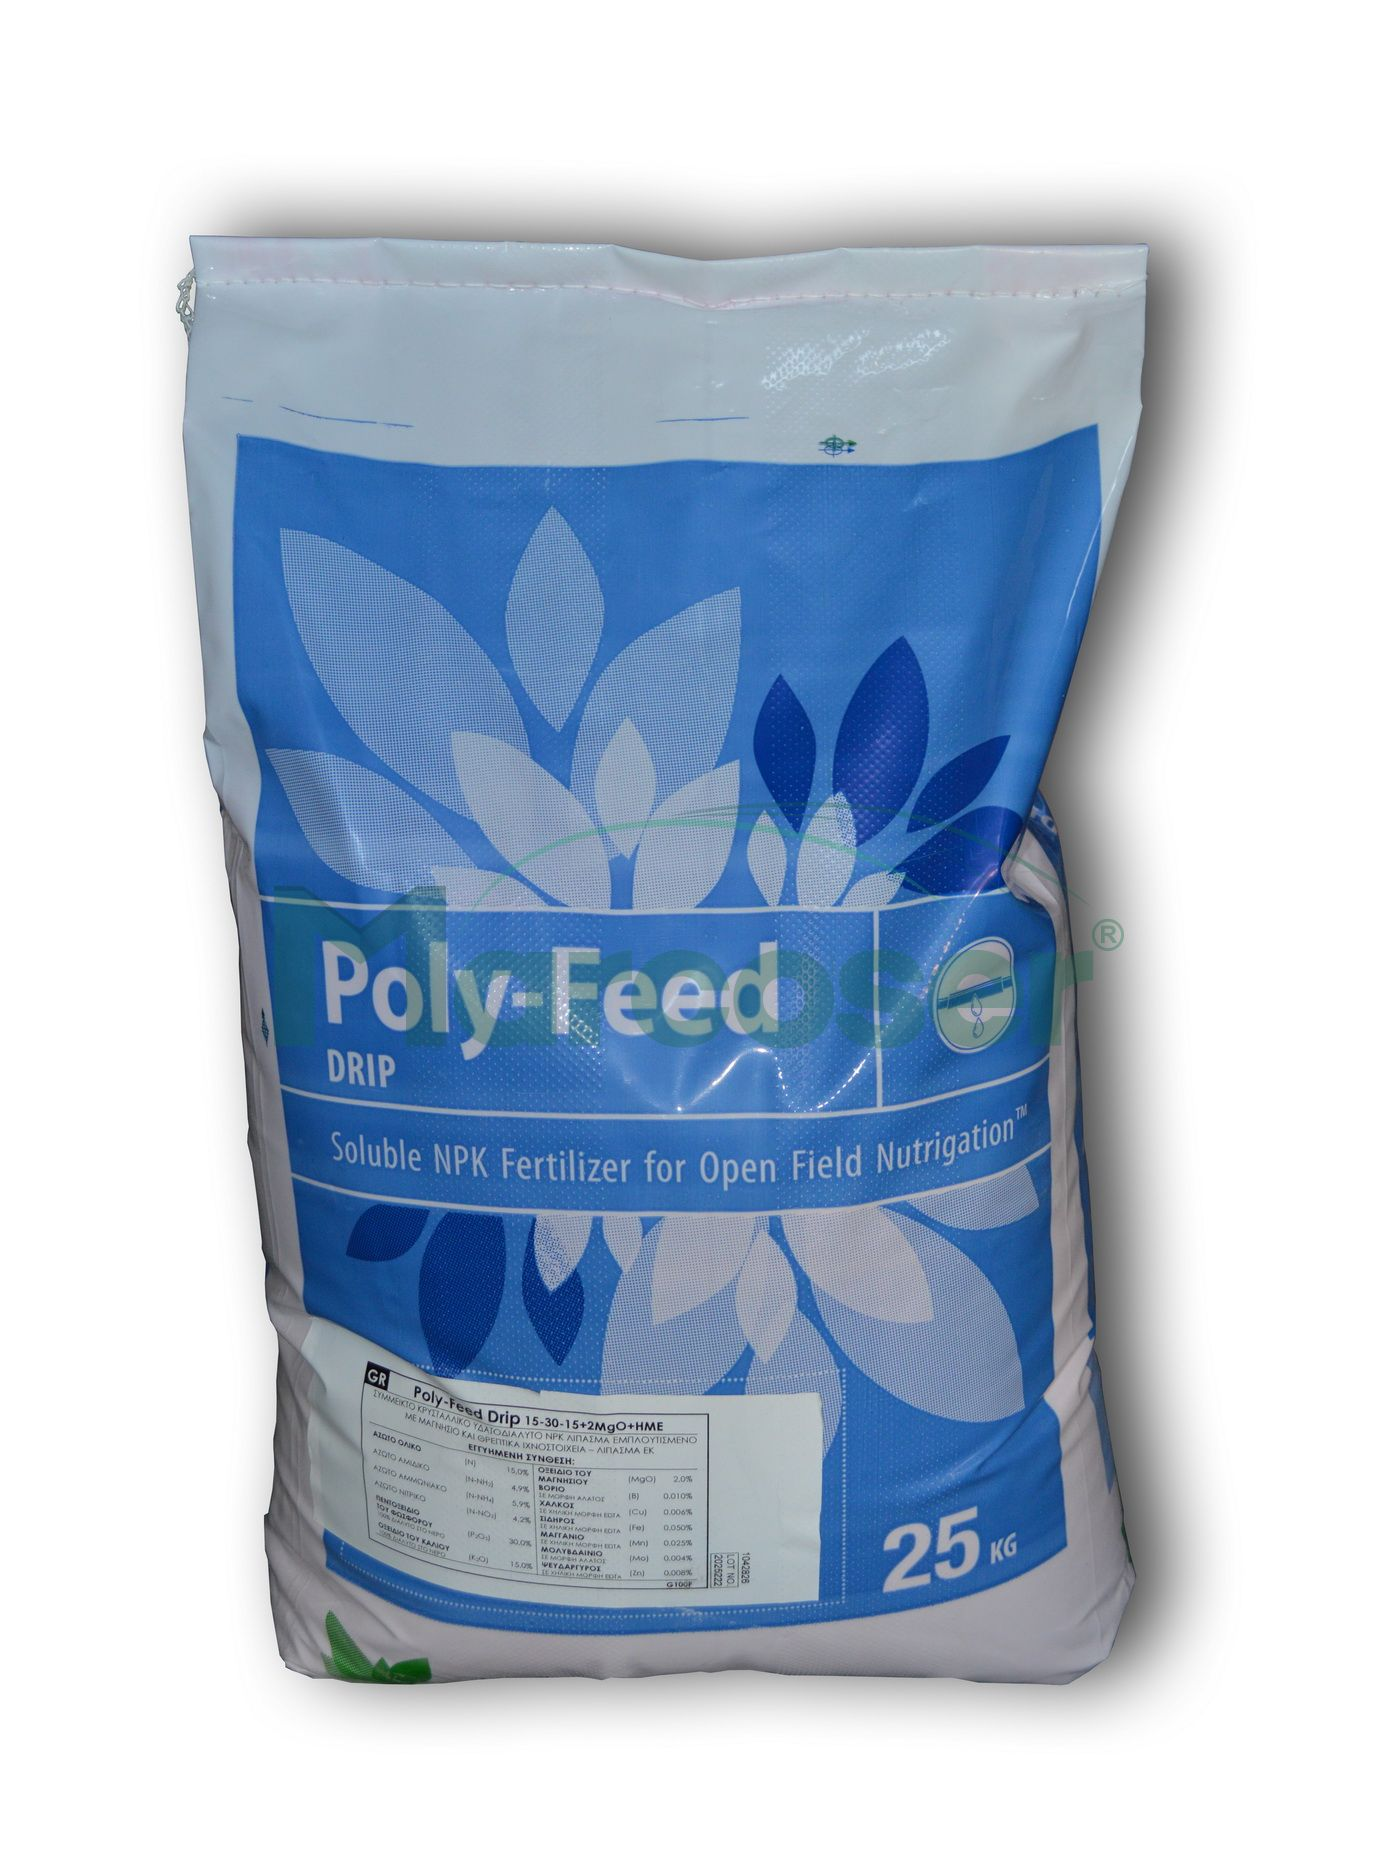 Poly-Feed 15:30:15